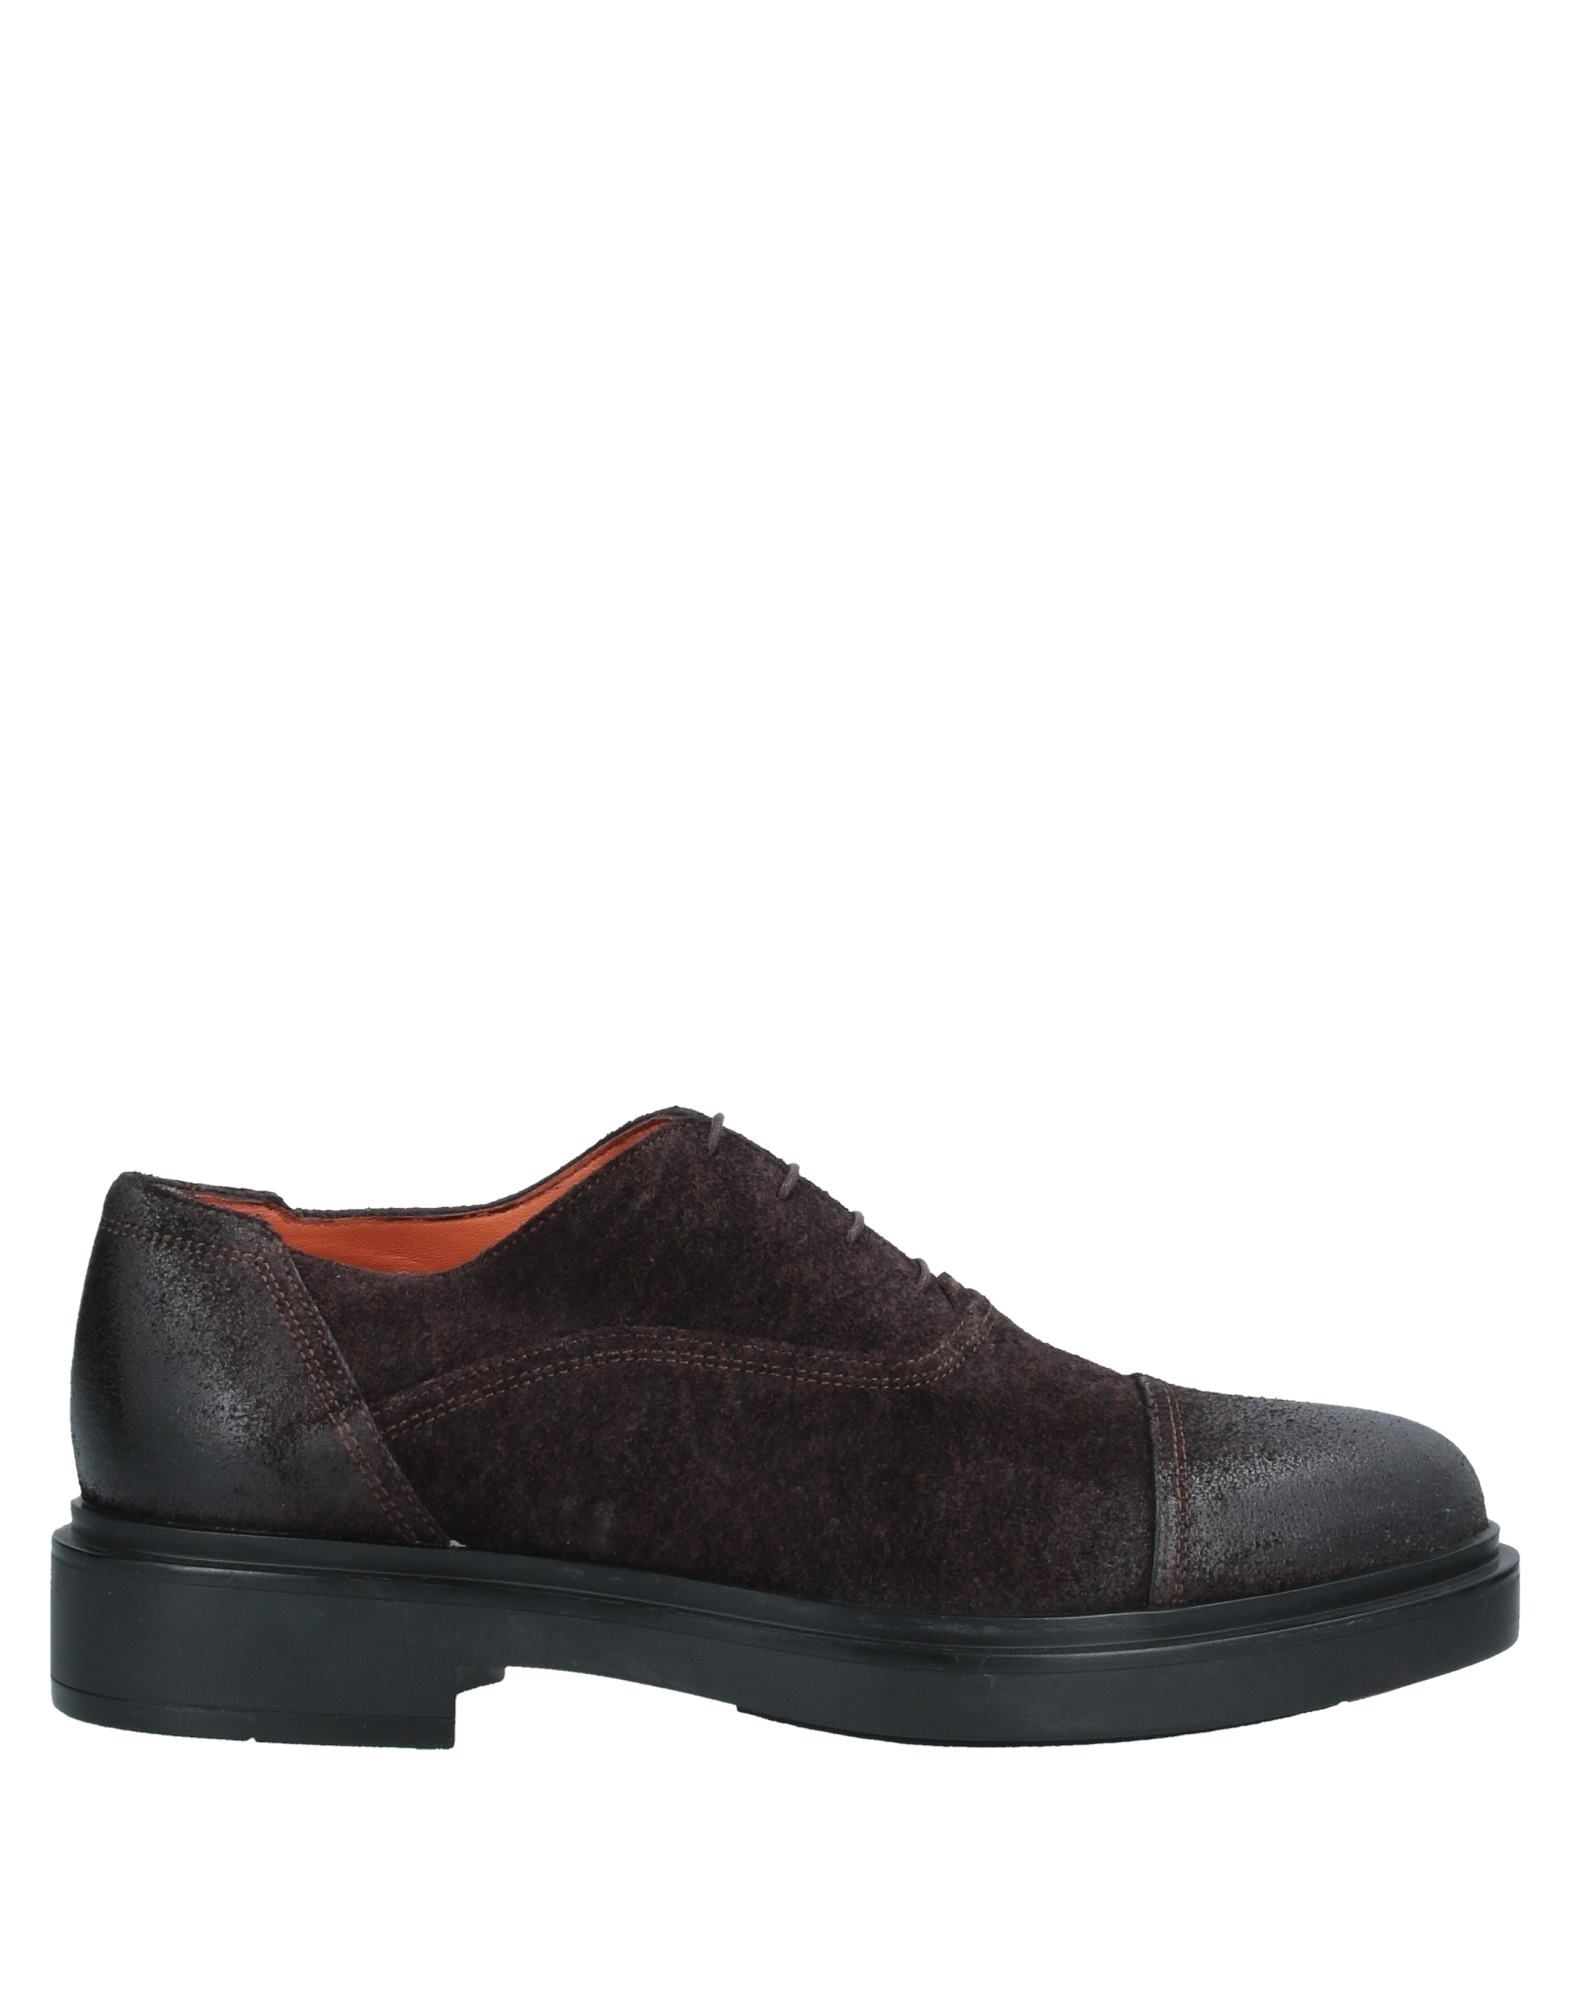 SANTONI Lace-up shoes. leather, split leather, suede effect, no appliqués, solid color, round toeline, square heel, leather lining, rubber cleated sole, contains non-textile parts of animal origin, large sized. Soft Leather